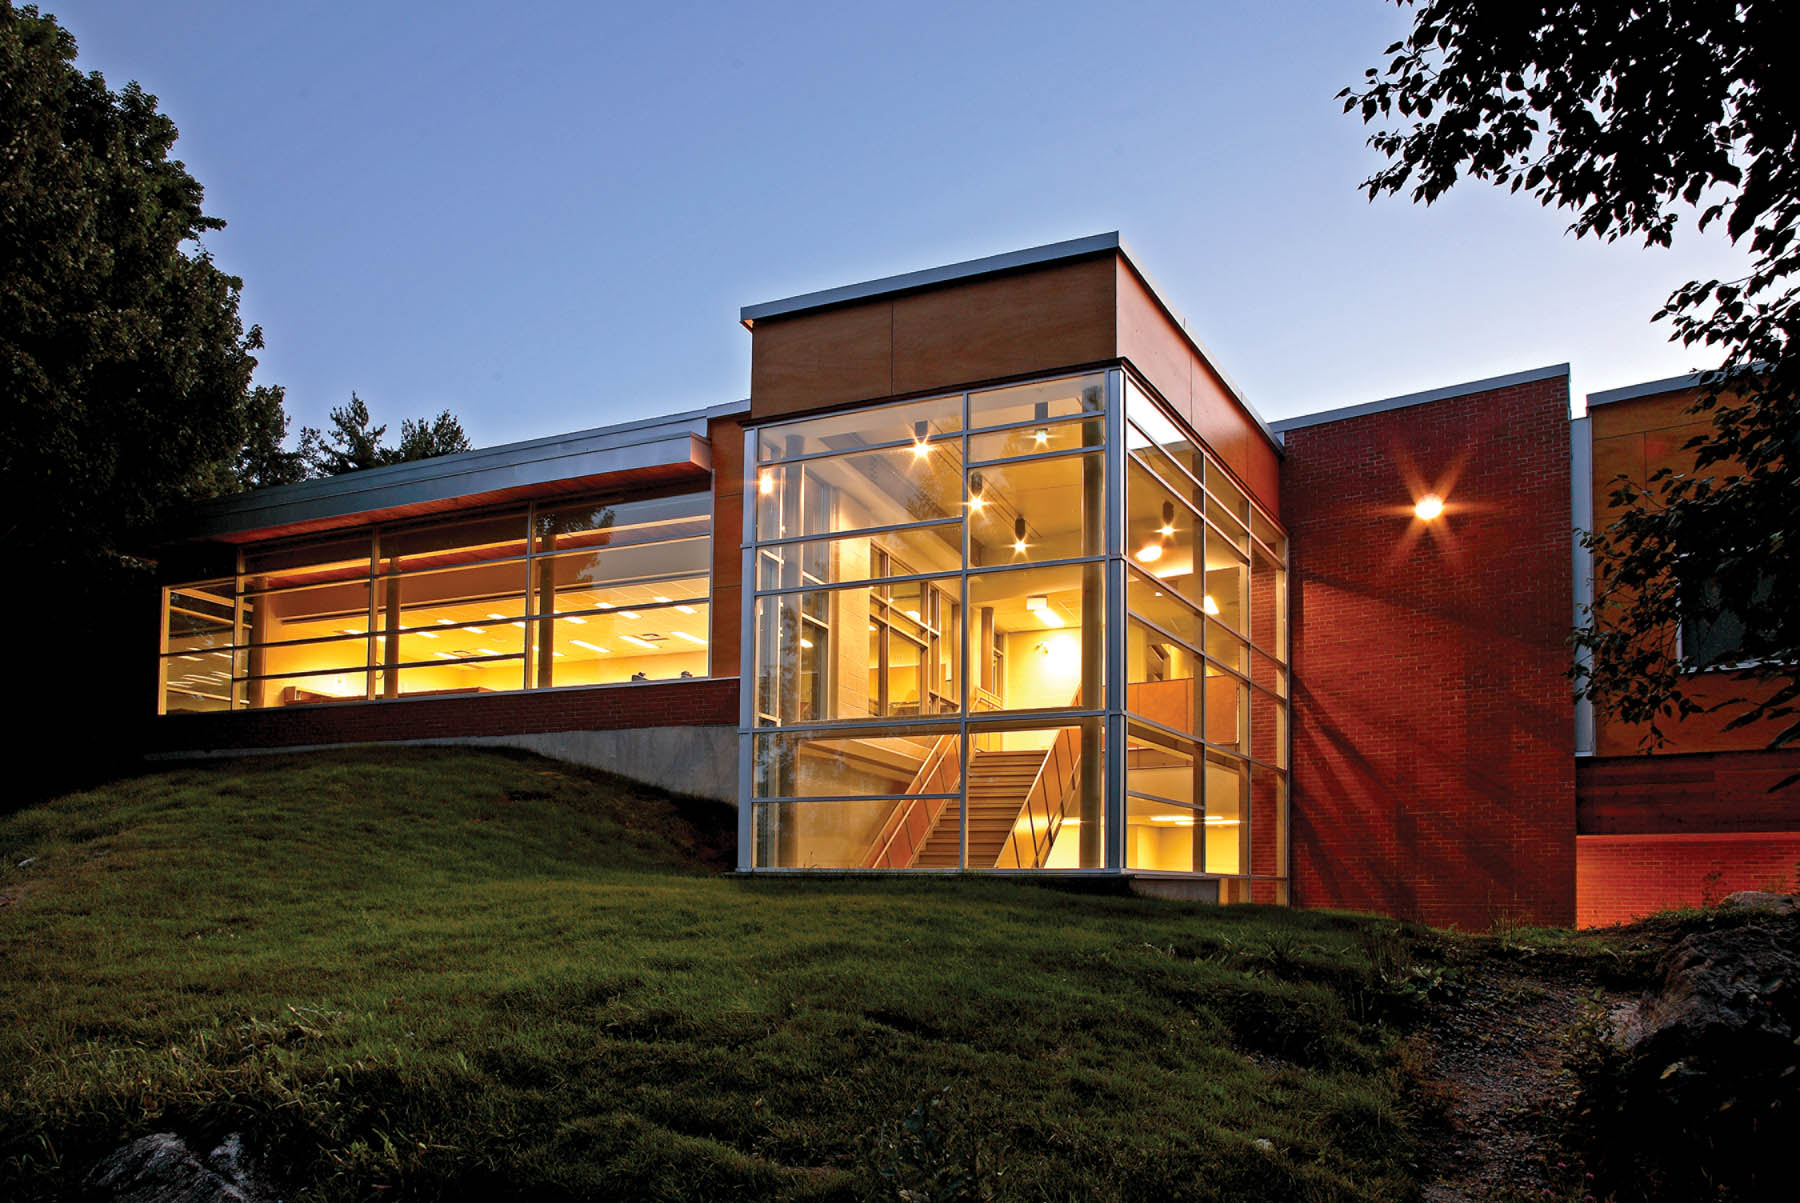 Illuminated glazed double height staircase and red brick façade nestled in green hill at dusk